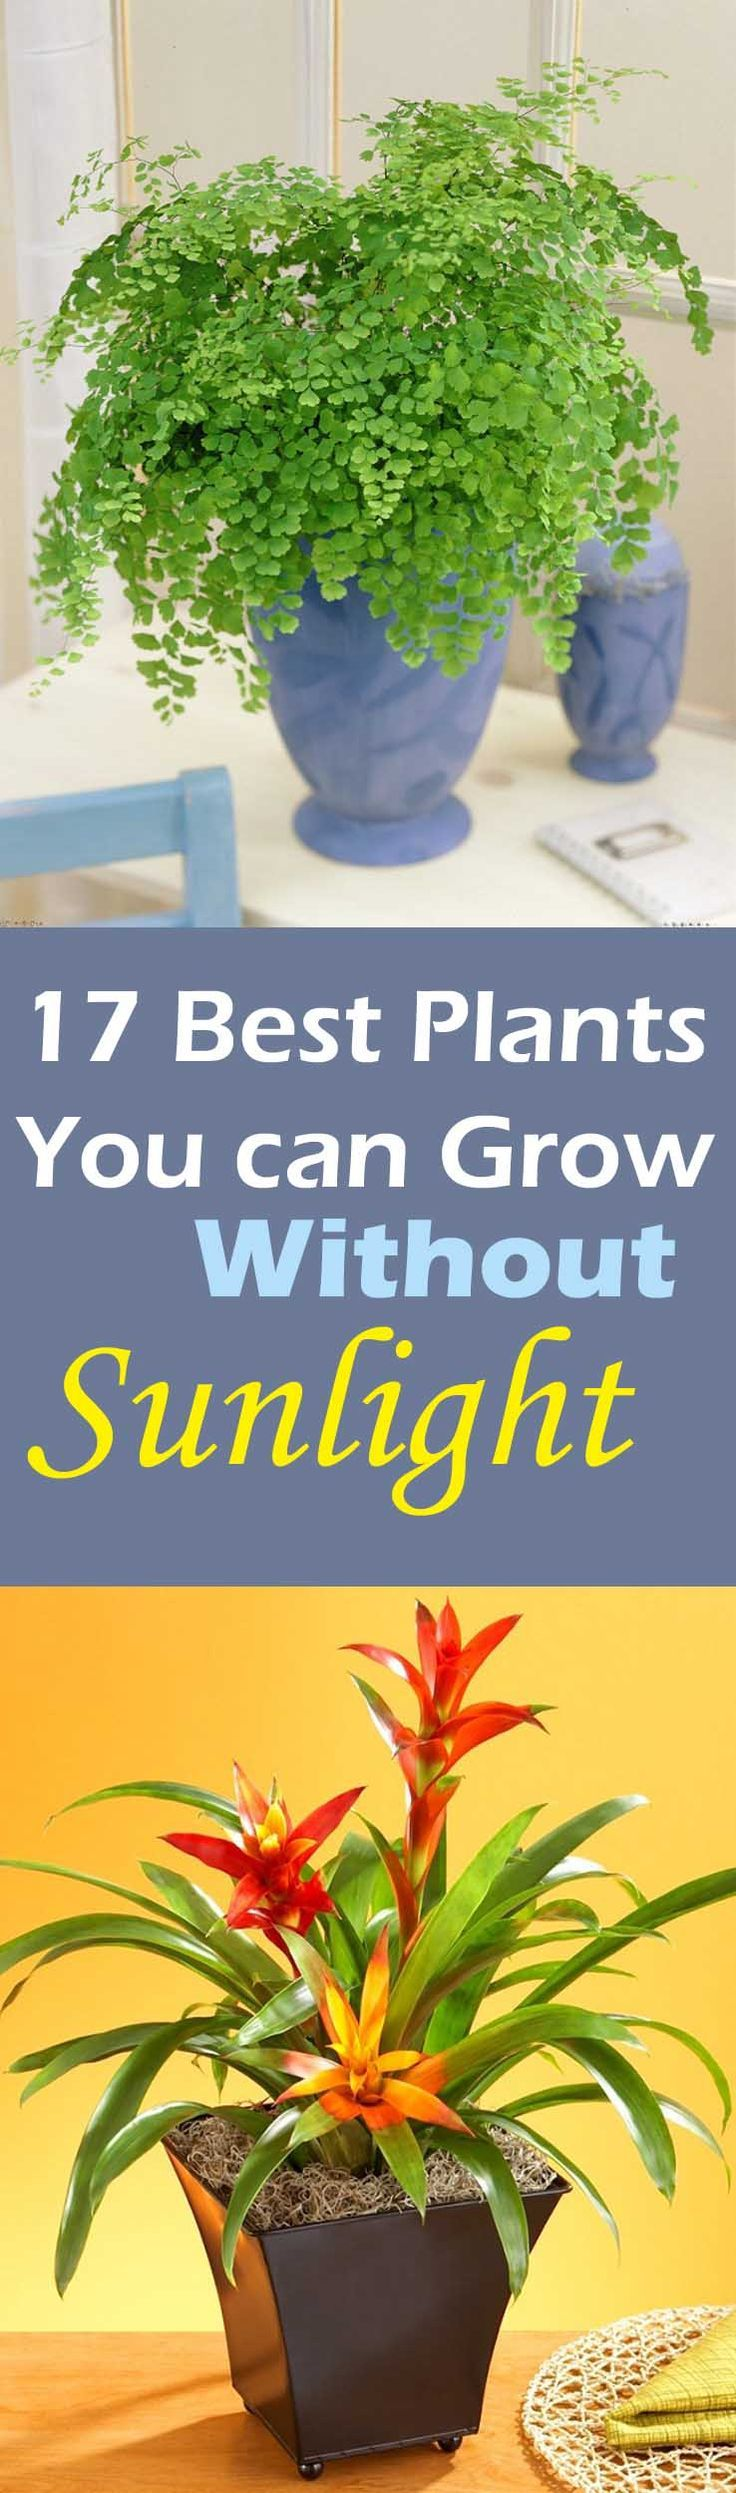 17 beautiful plants you can grow without sun bath room for What plants can i grow indoors